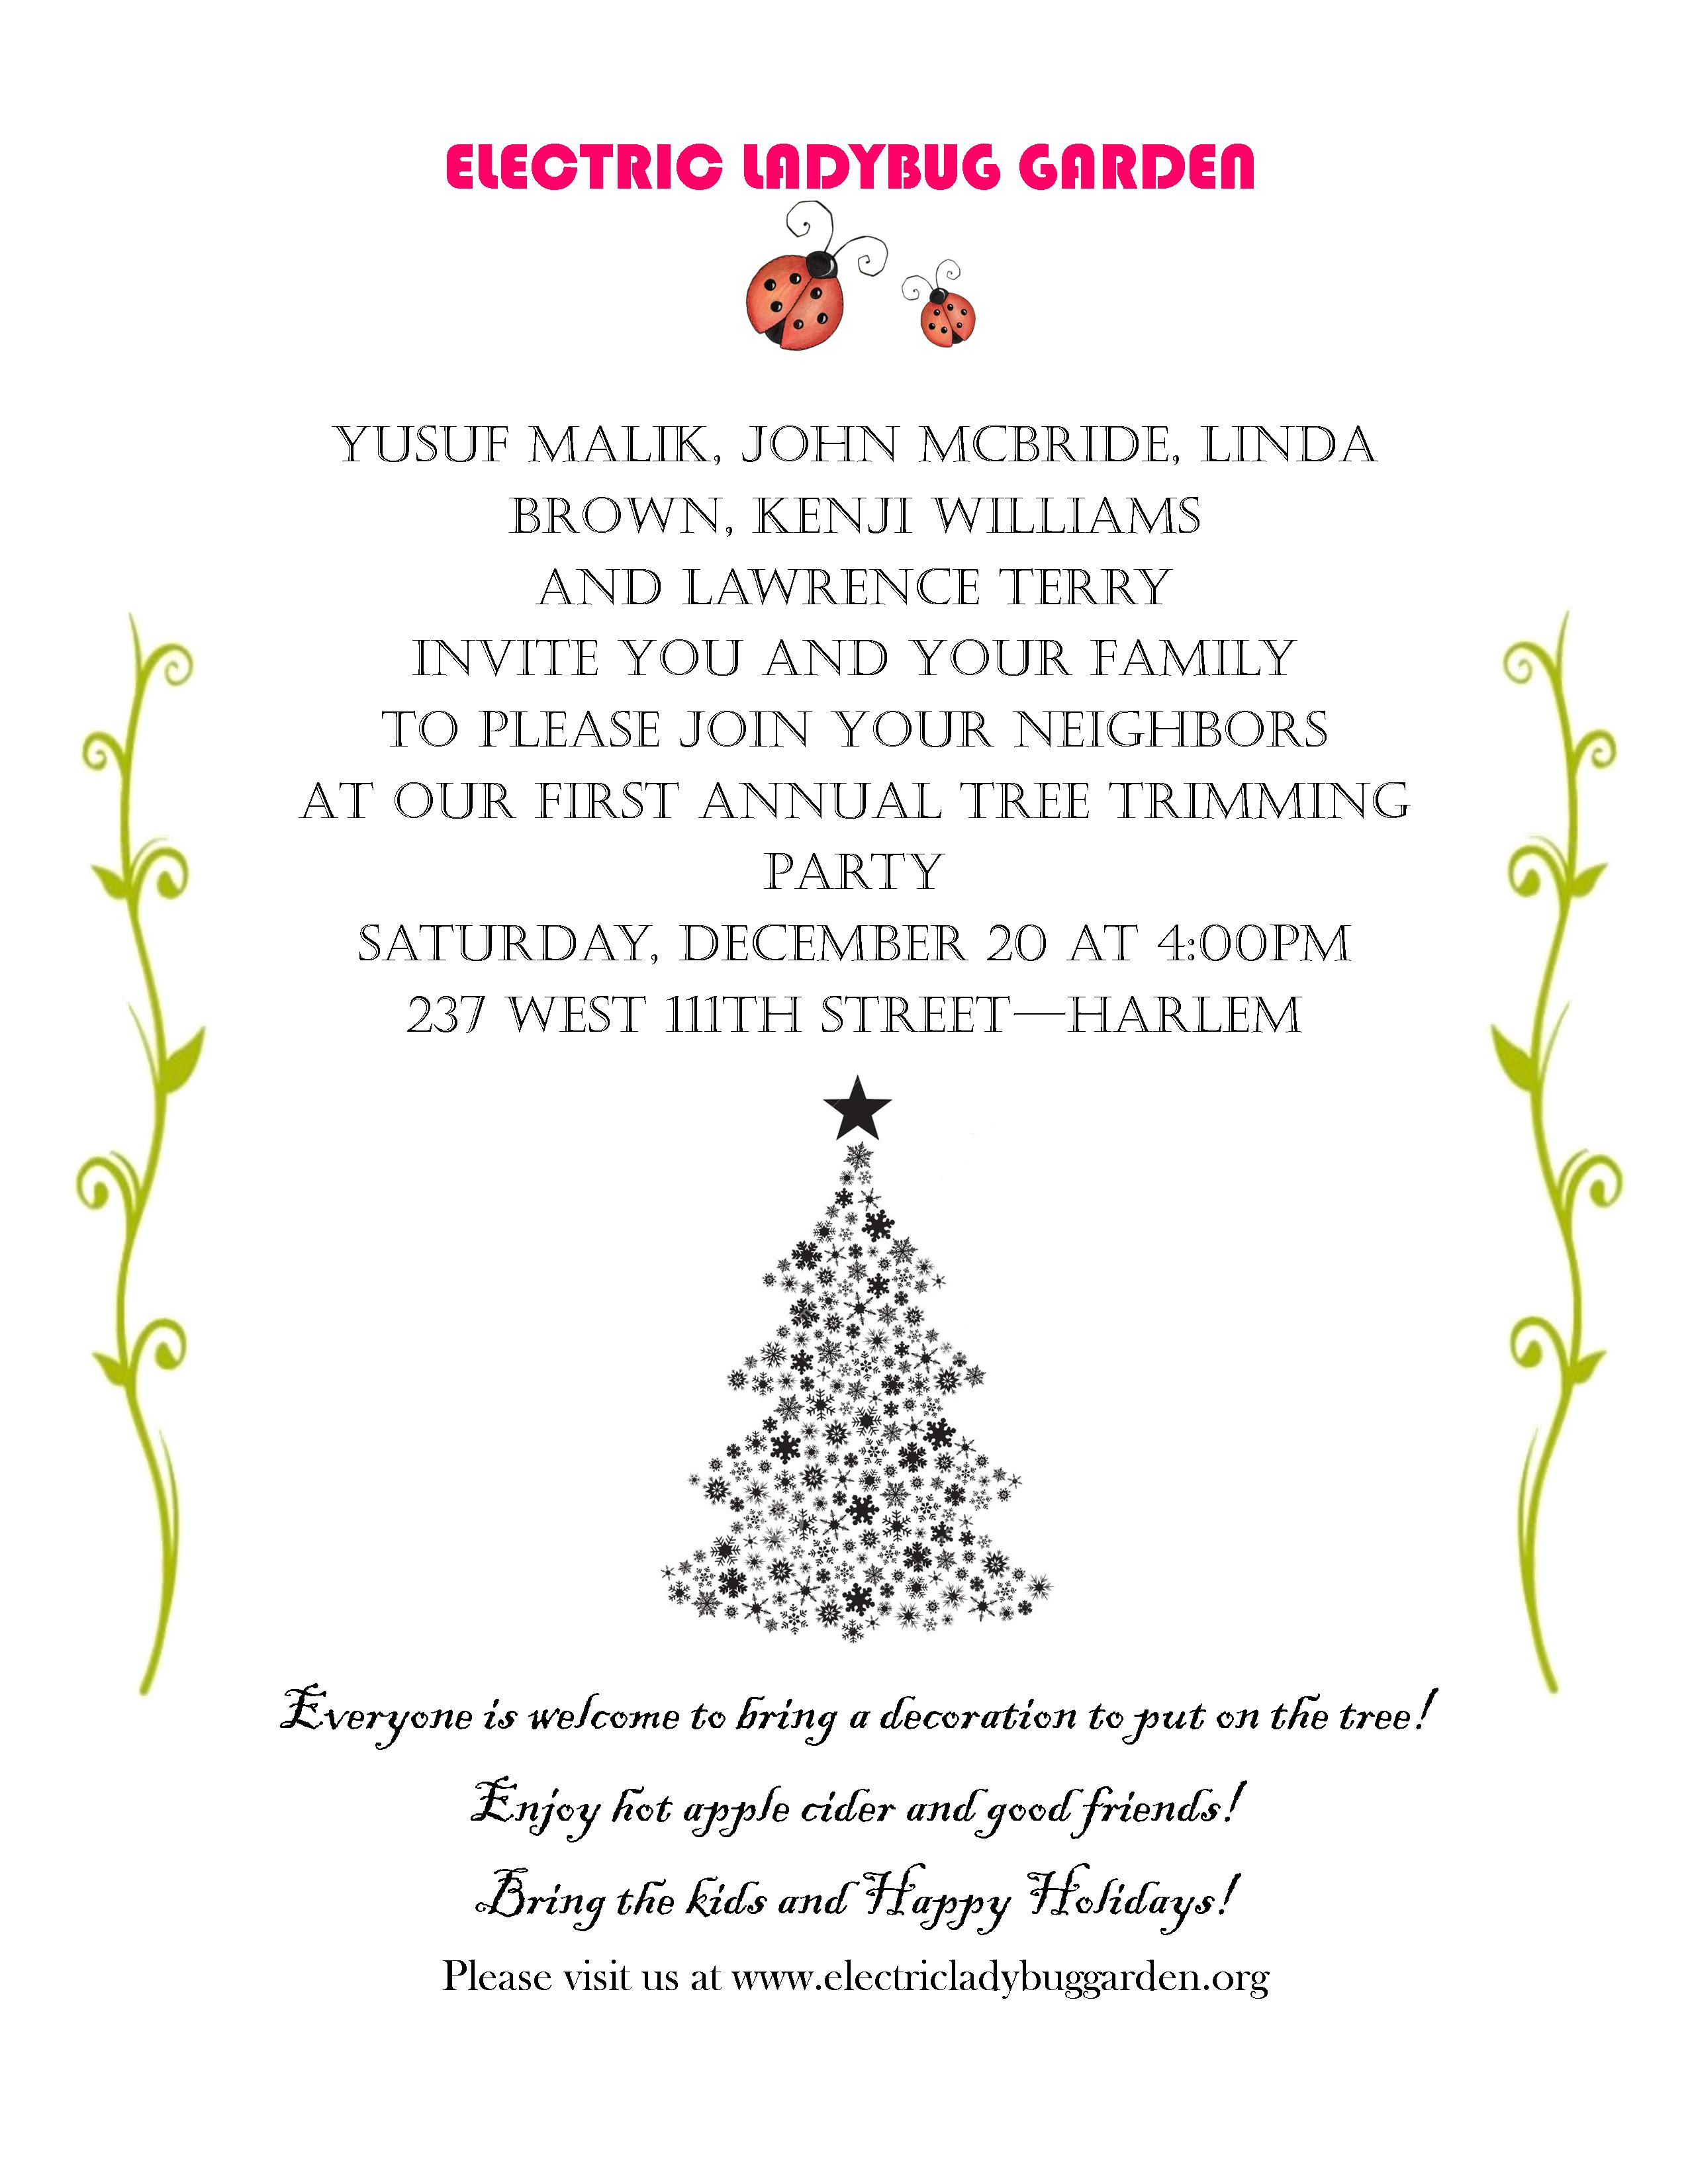 Electric Ladybug Garden Page 2 of 3 A GreenThumb Community – Tree Trimming Party Invitation